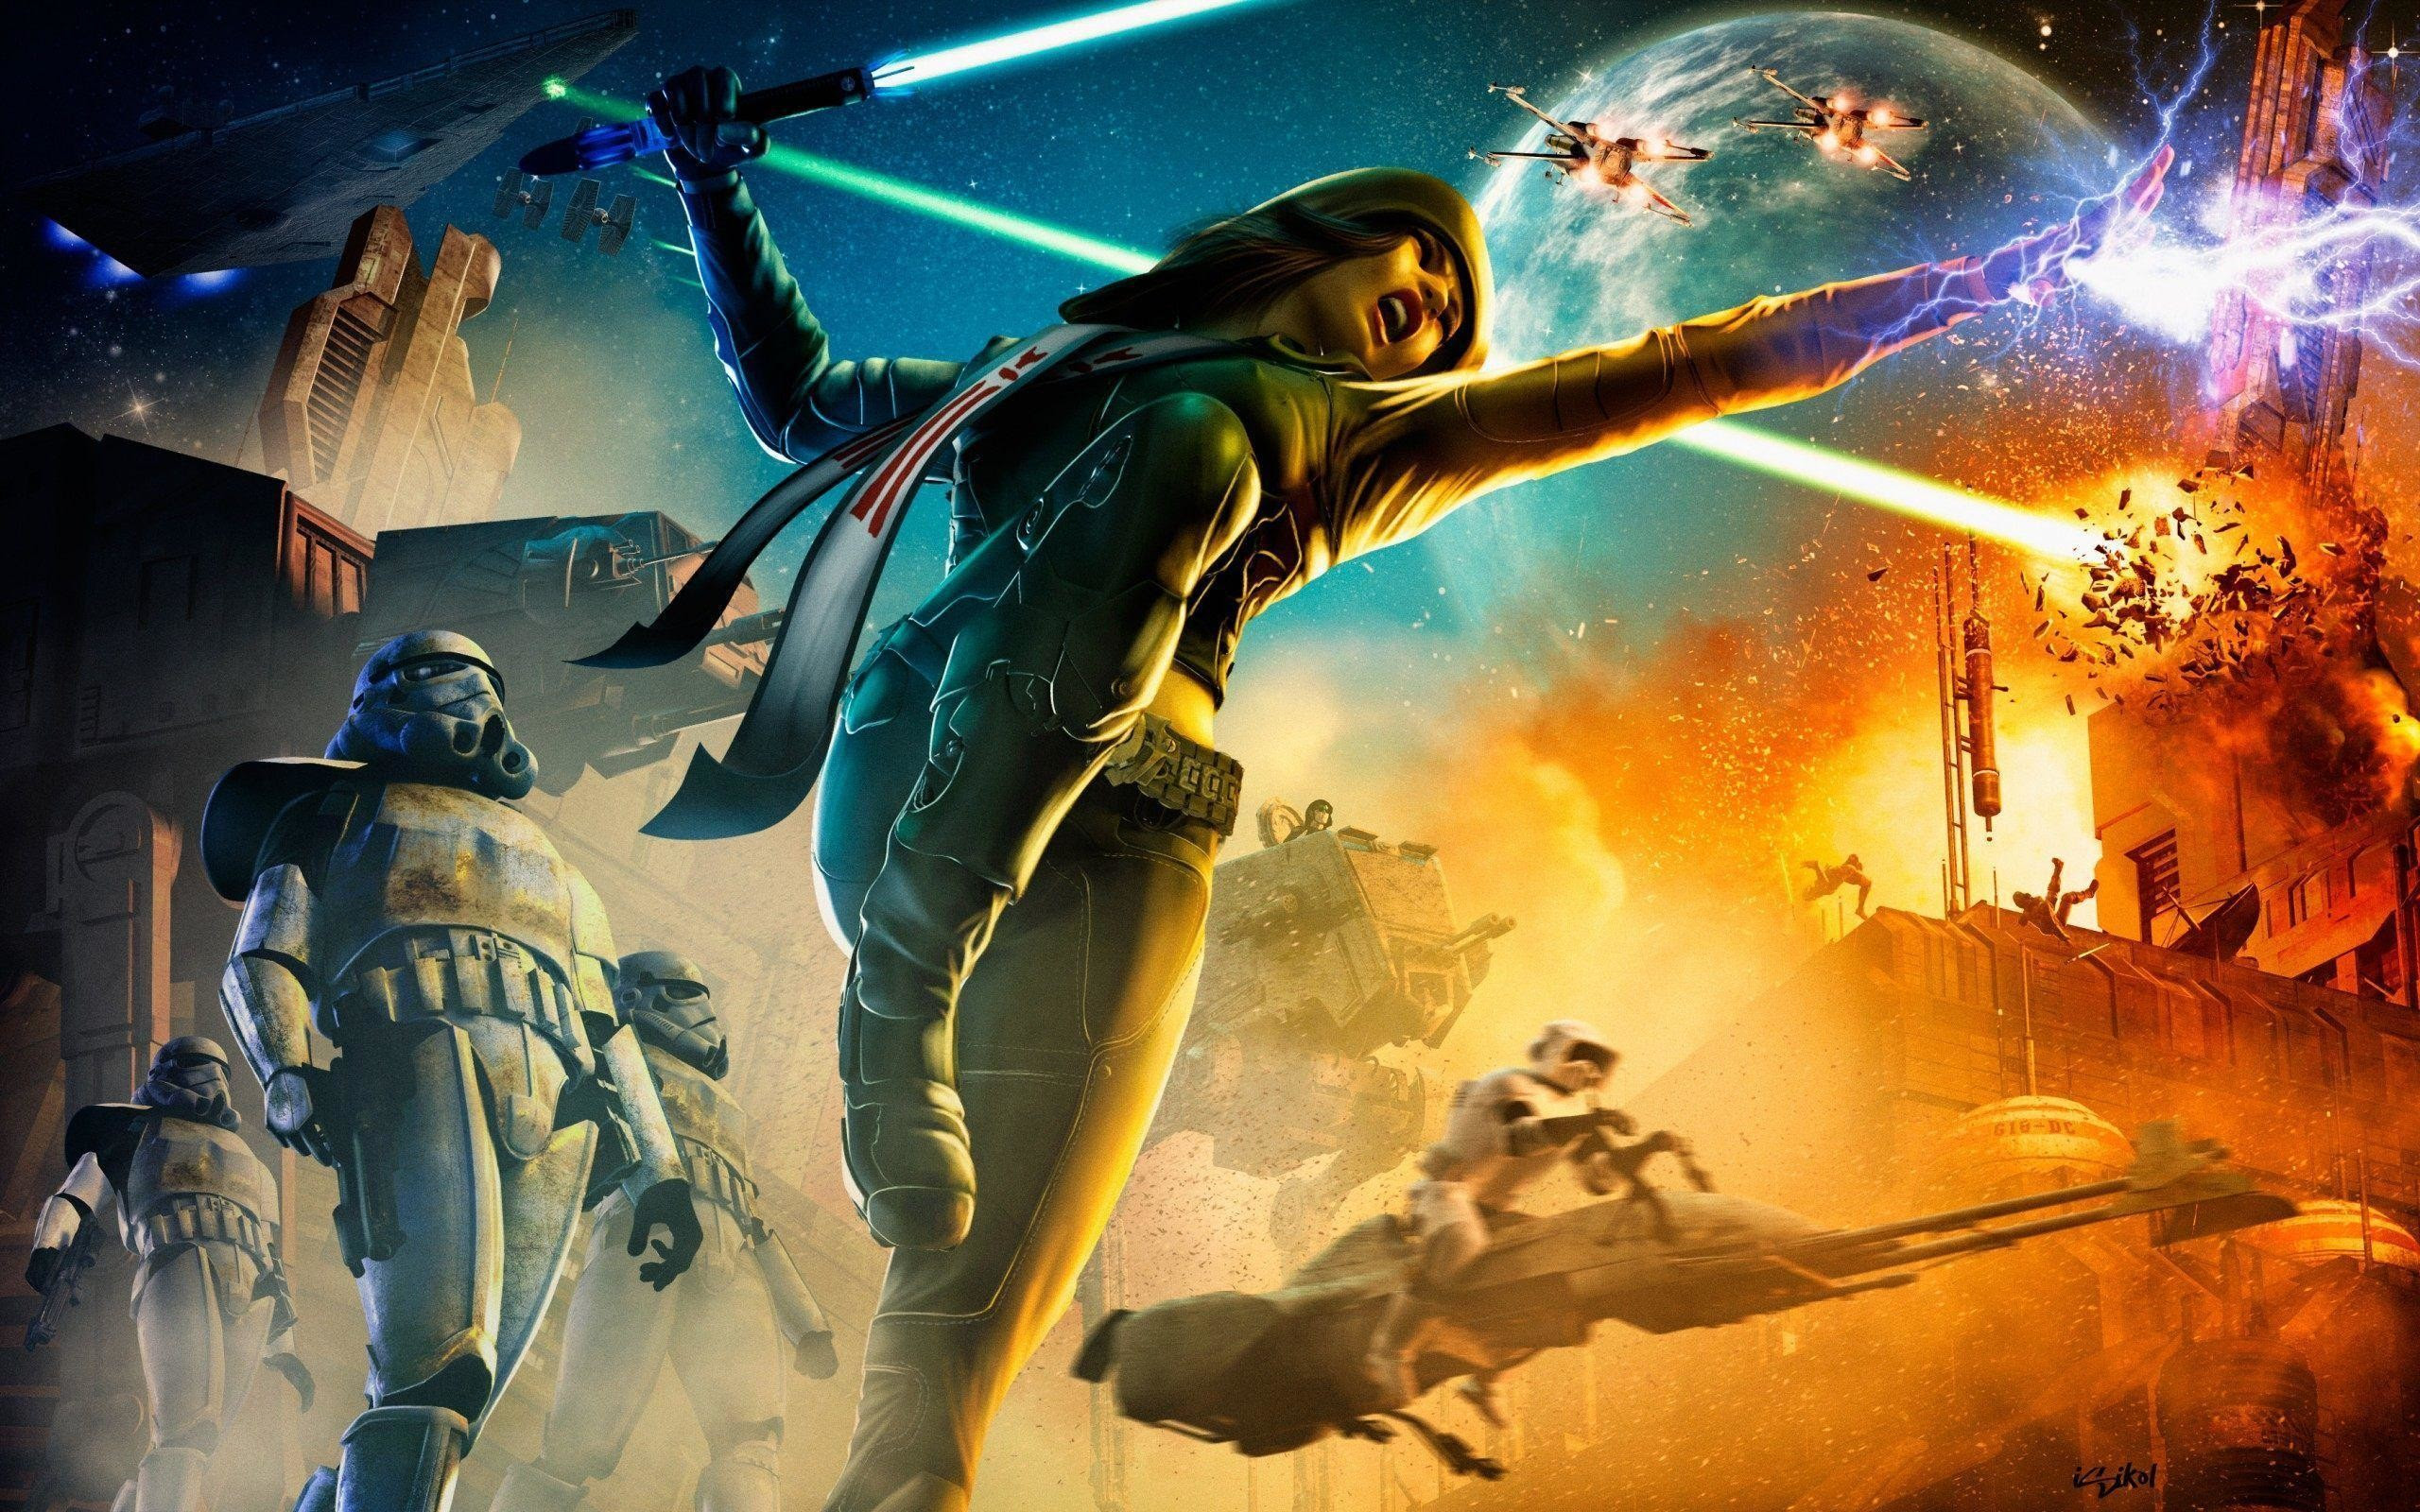 Star Wars Rebels Wallpapers 86 Images